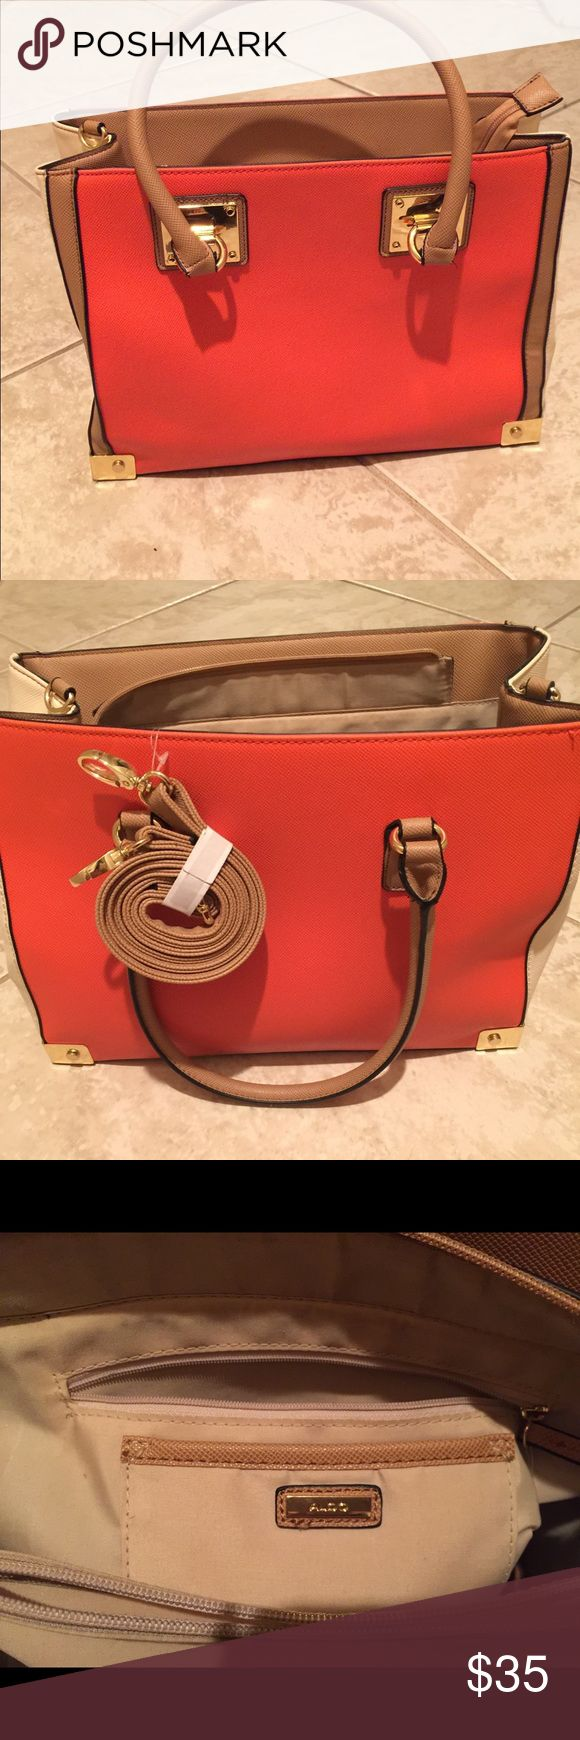 Aldo's Handbag Leather orange and cream Aldo's handbag outlined in gold metal. Includes extended strap. Be prepared to receive endless compliments. Aldo Bags